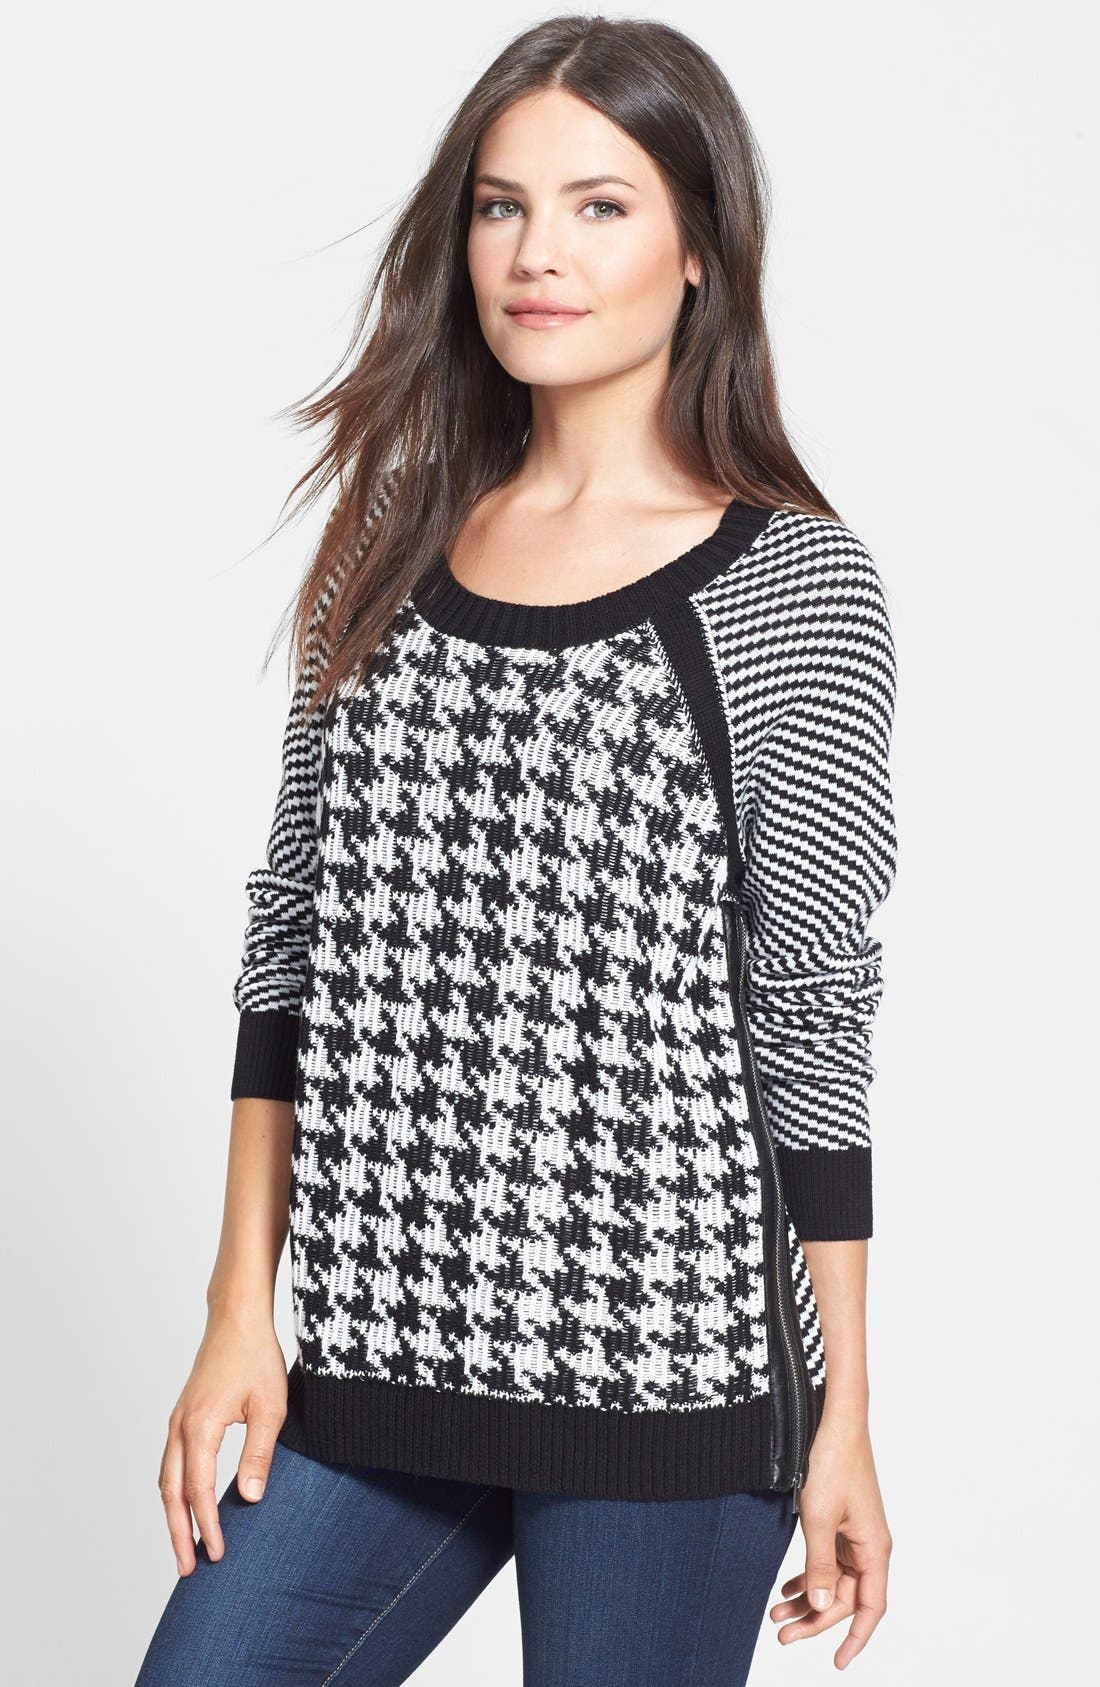 Alternate Image 1 Selected - Two by Vince Camuto Houndstooth Front Jacquard Sweater